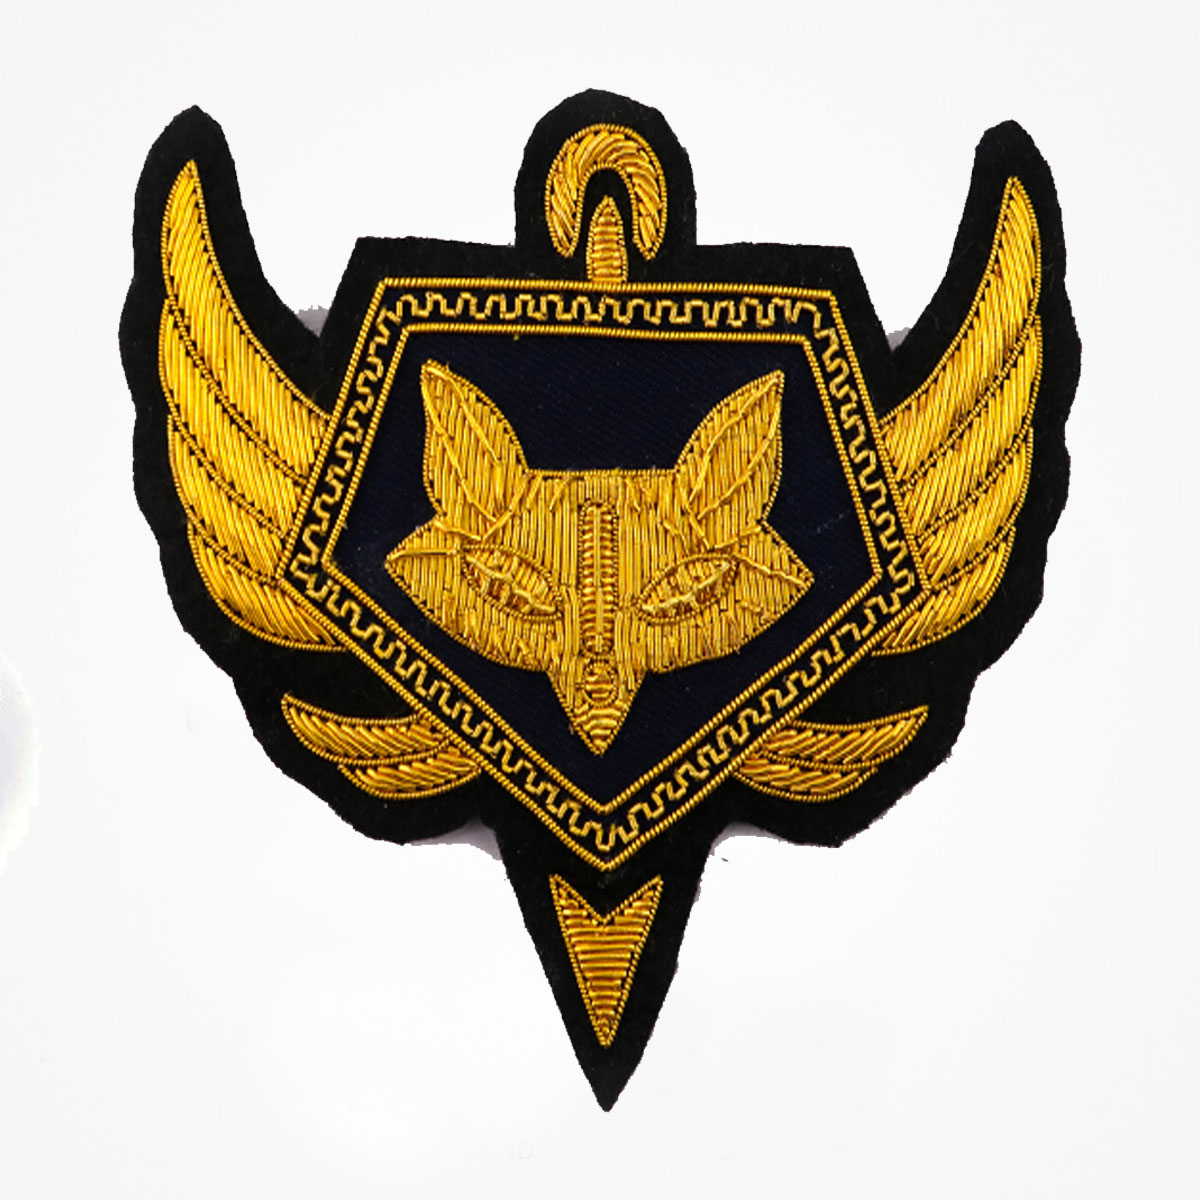 Qg - 3319 - Fashionable 3D embroidered look Made by skilled artisans Bullion wire and silk thread hand Stitched on Black color Felt Available in gold and silver colors Size = 3.5 inches sew-on backing: Perfect for caps, sports jacket, leather jackets, blazer coat, Blazer Pocket, shirts uniforms, Accessories and many More Pin backing: easy to removable 4